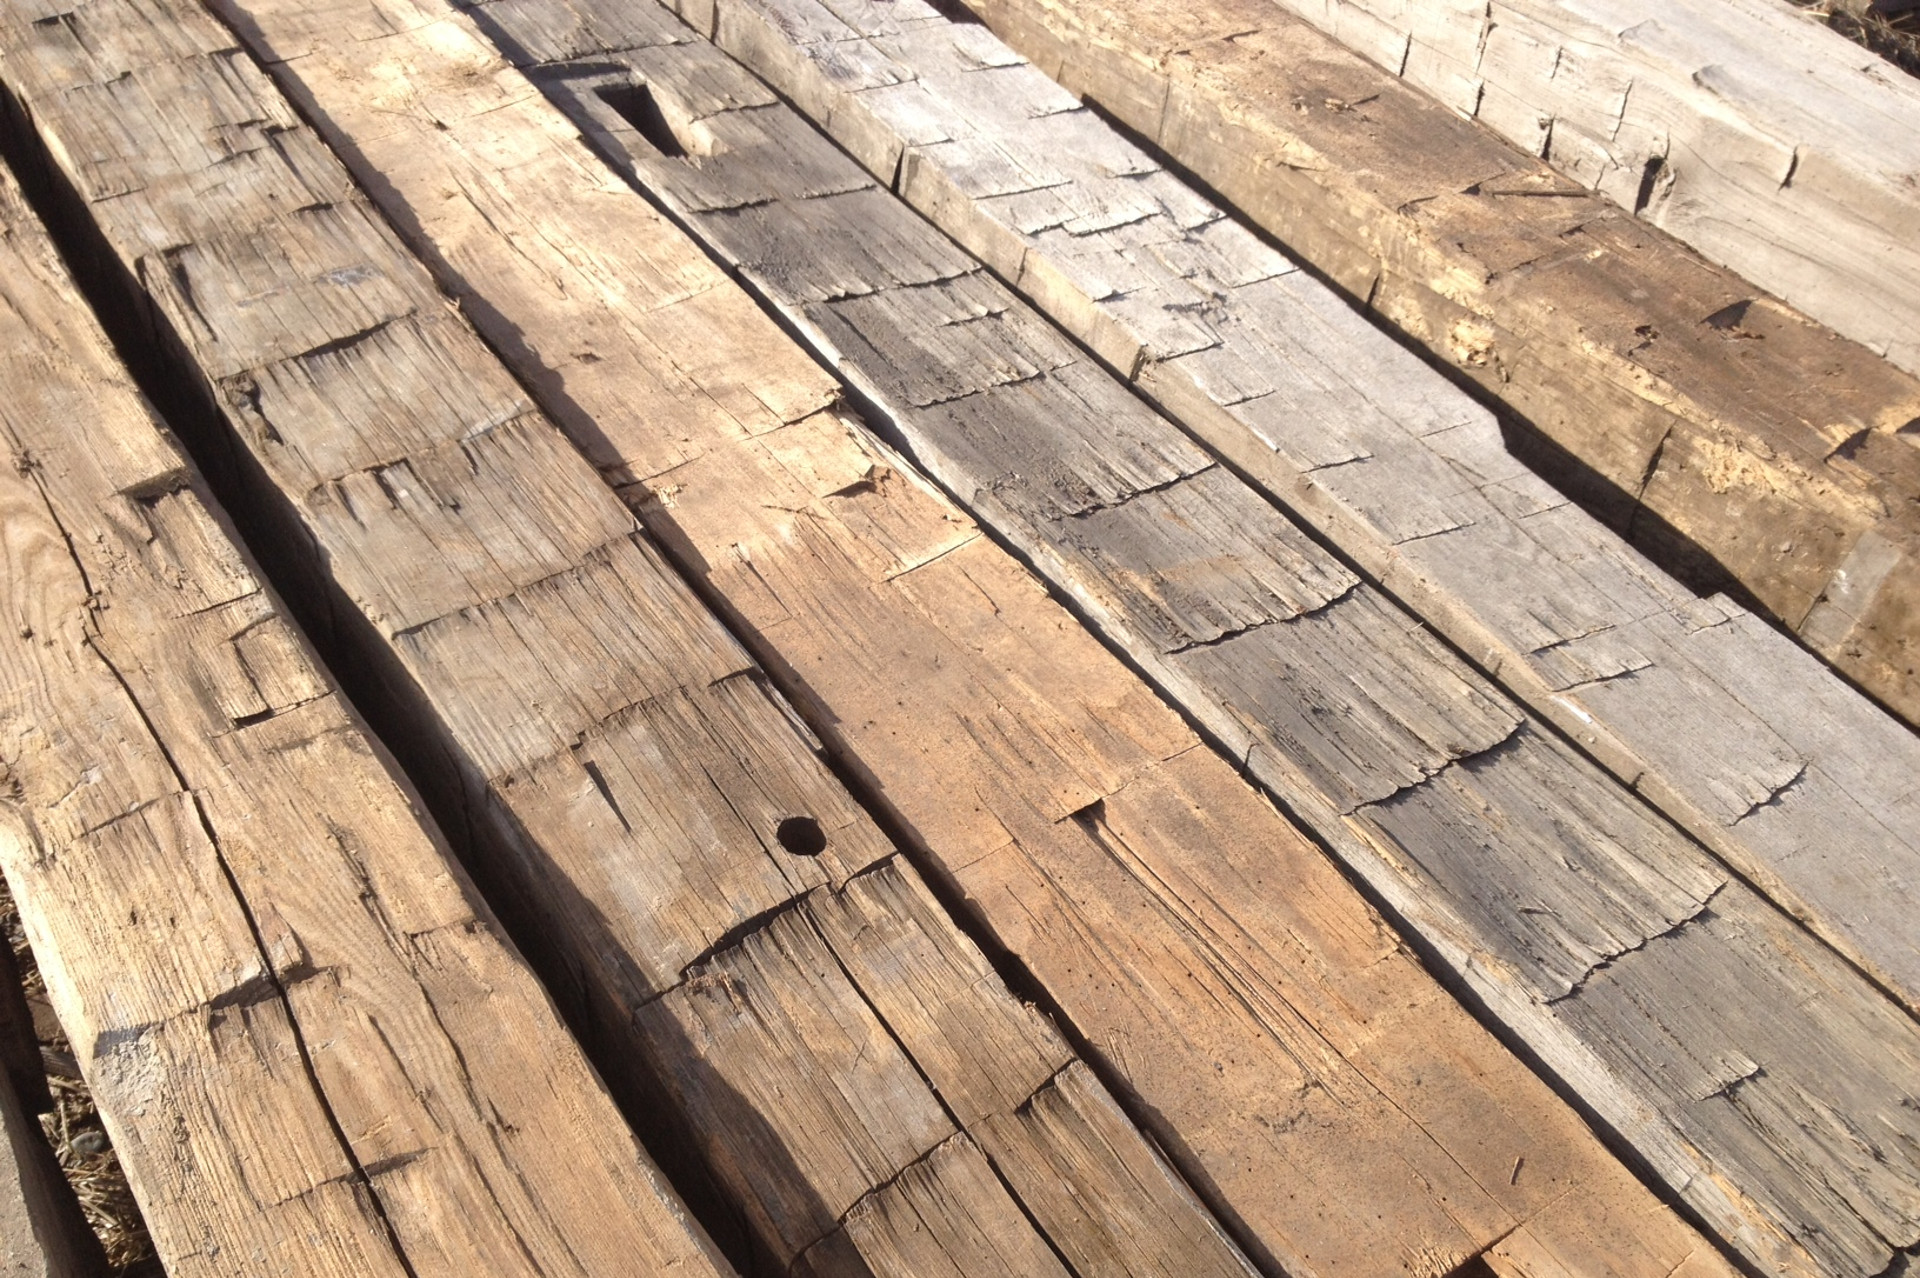 Reclaimed lumber hemlock reclaimed lumber thickness oak for Reclaimed wood decking